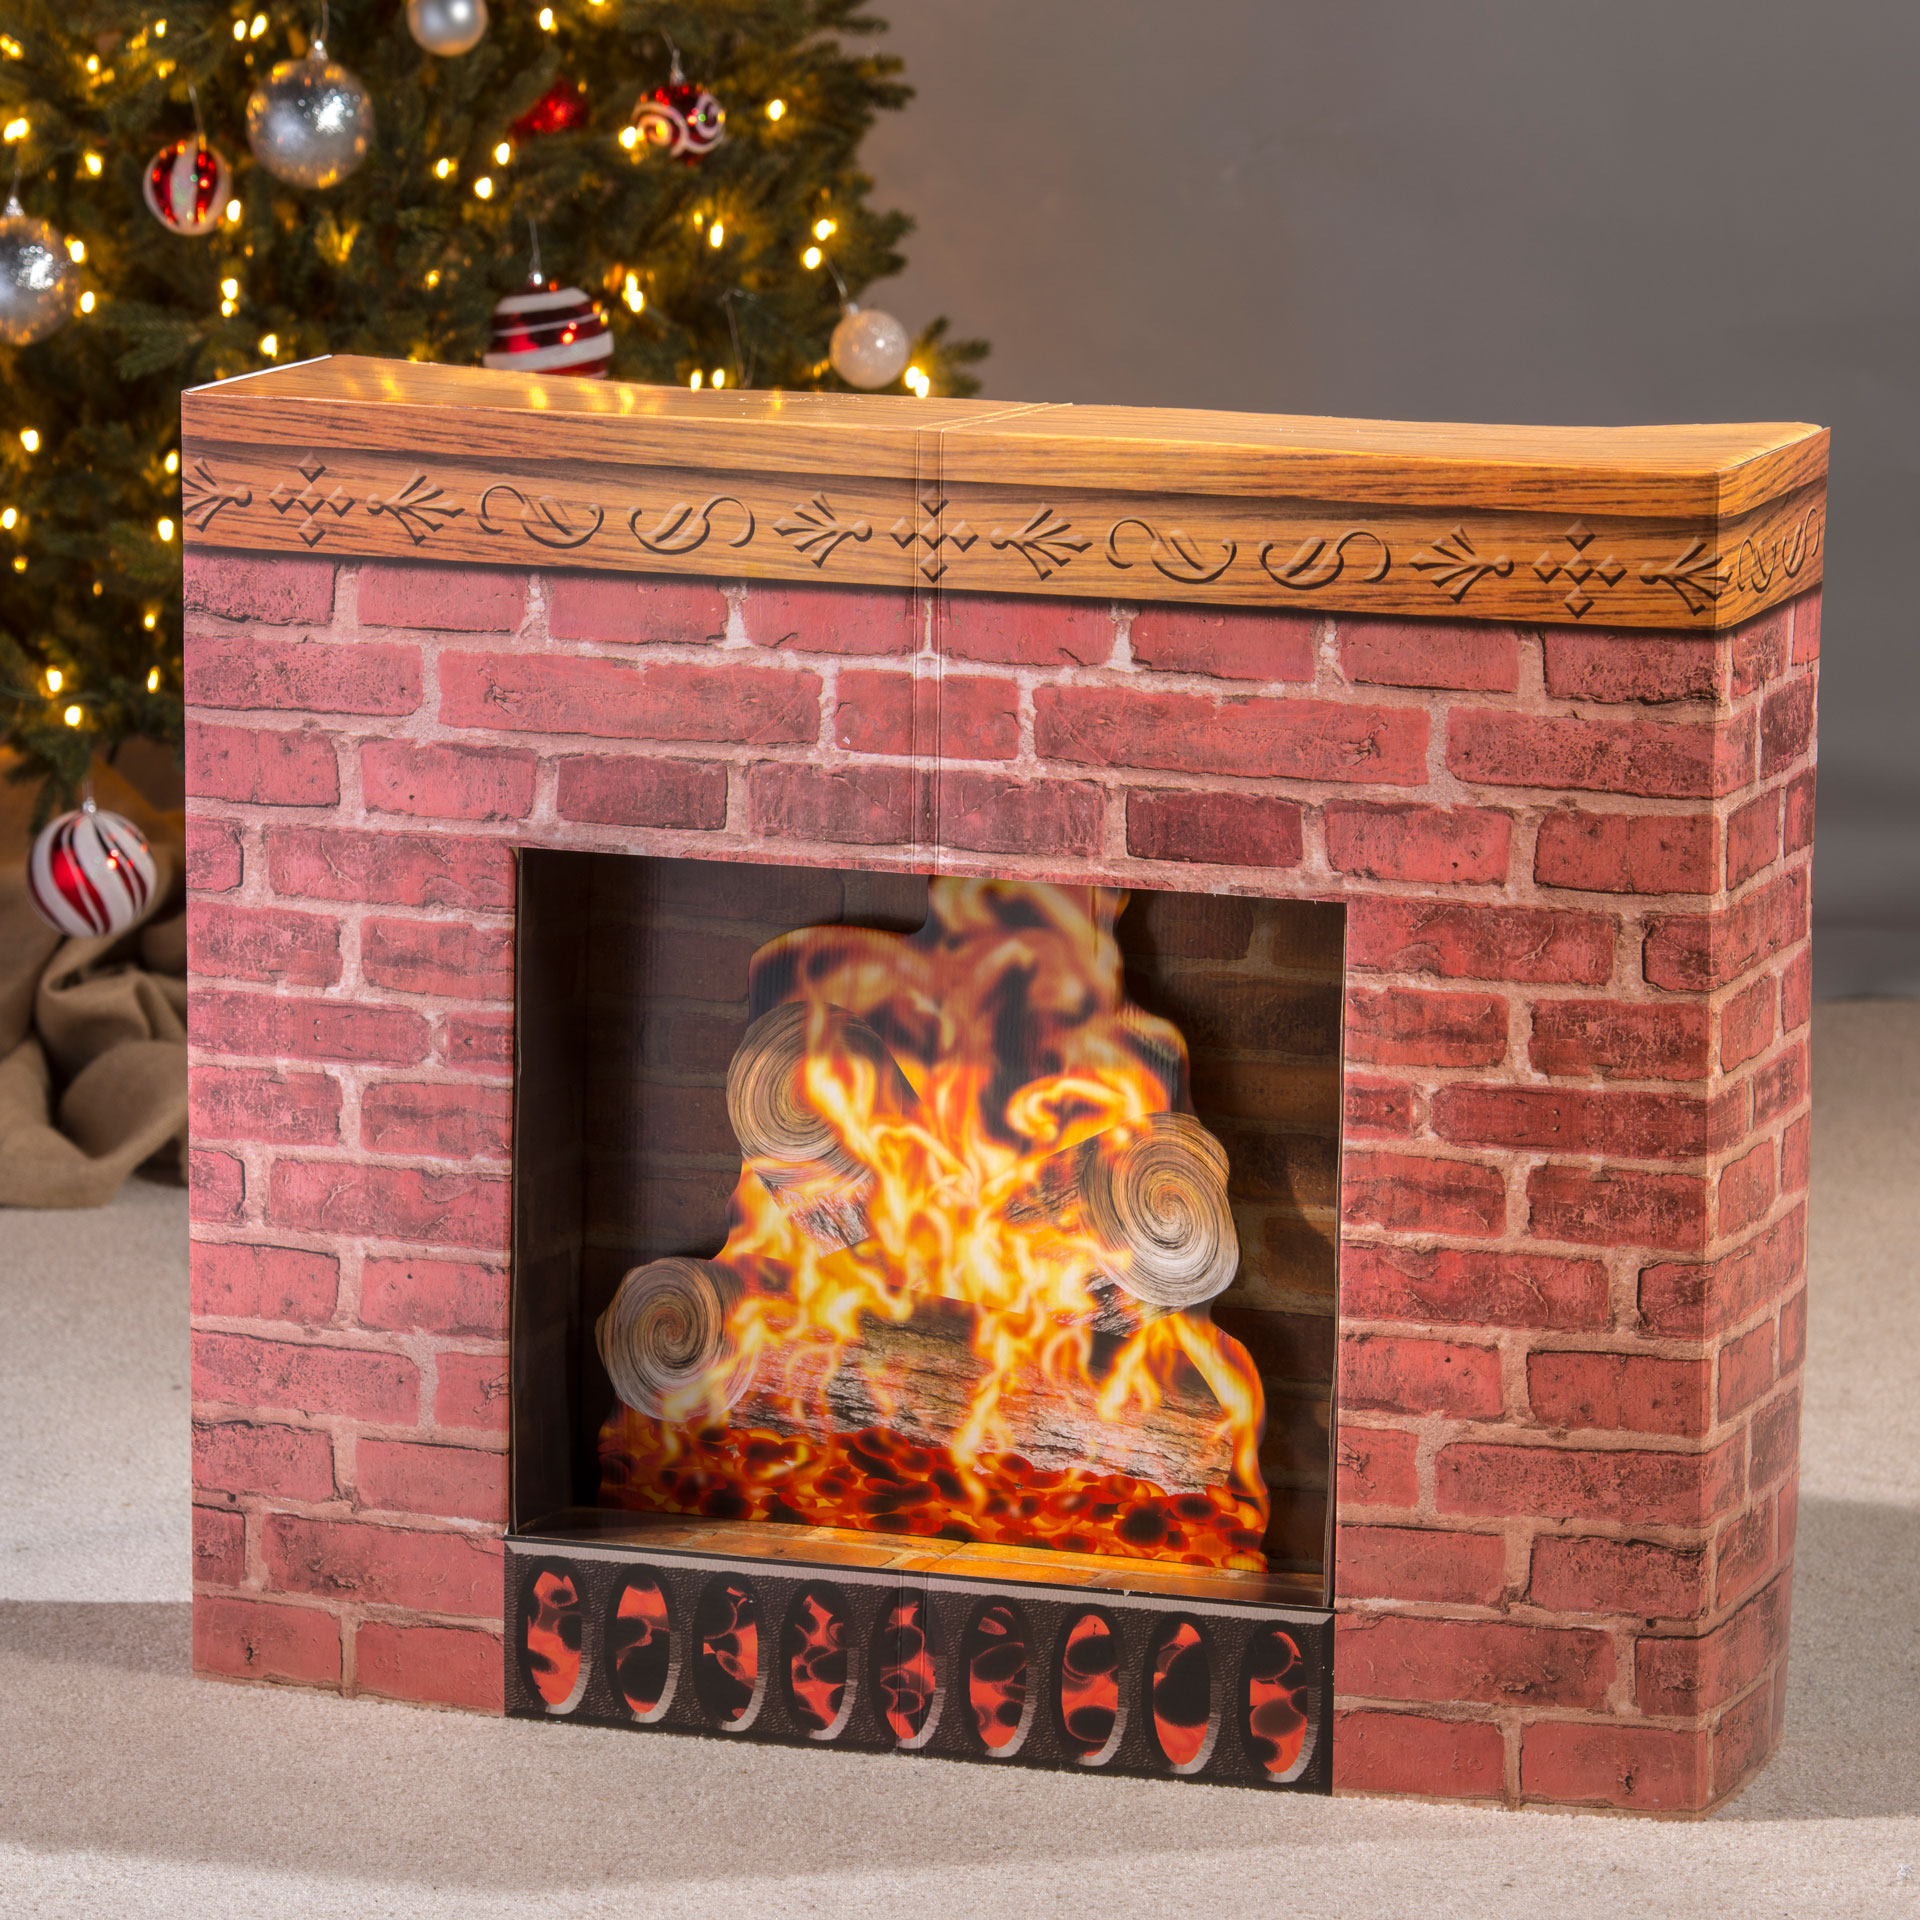 Fake Fireplaces For Decoration Fireplace Prop Cardboard Stand Up